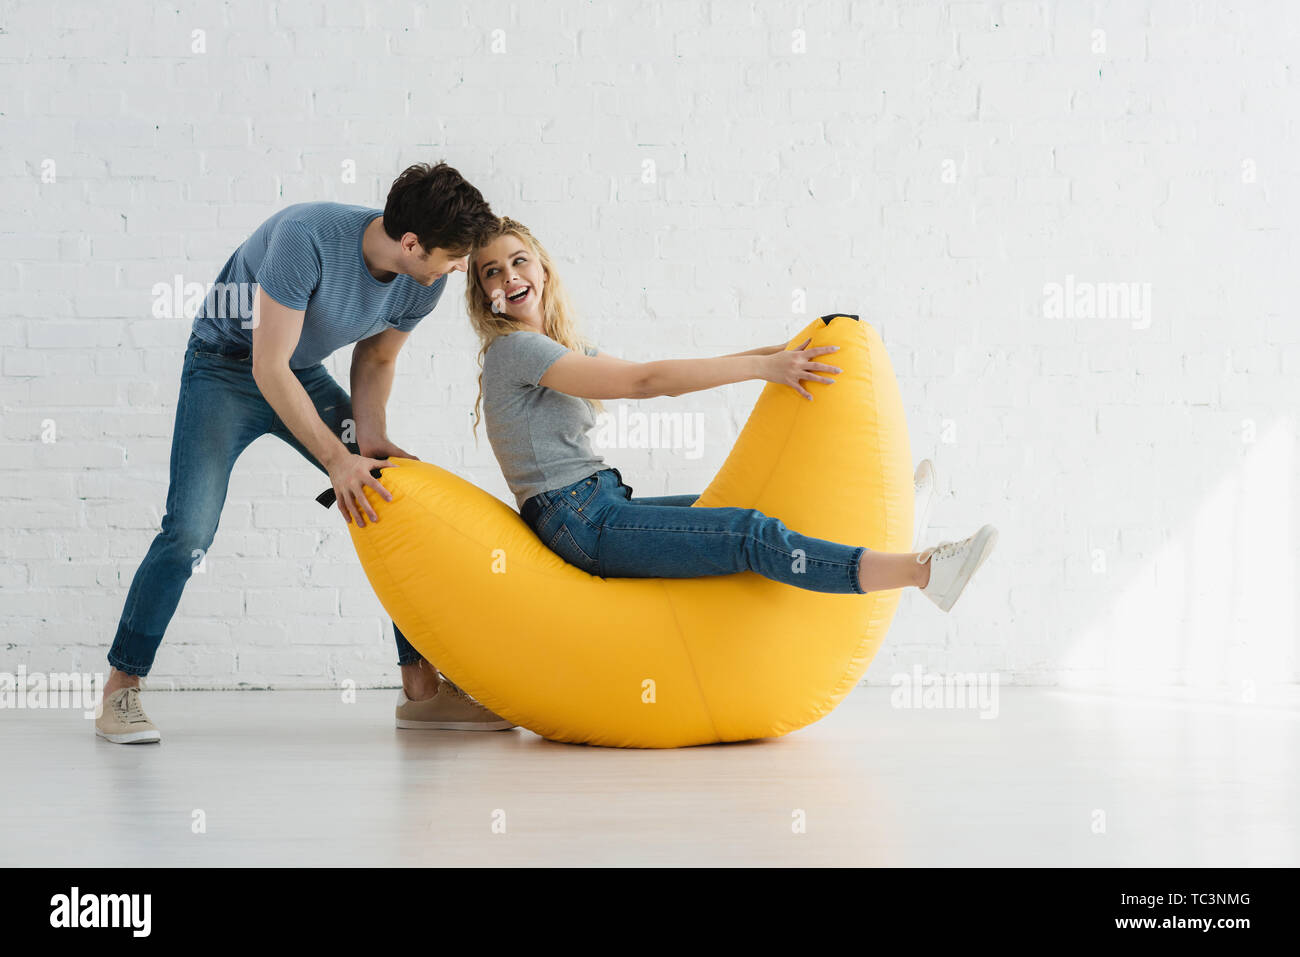 cheerful woman sitting on yellow bean bag chair and looking at handsome man - Stock Image